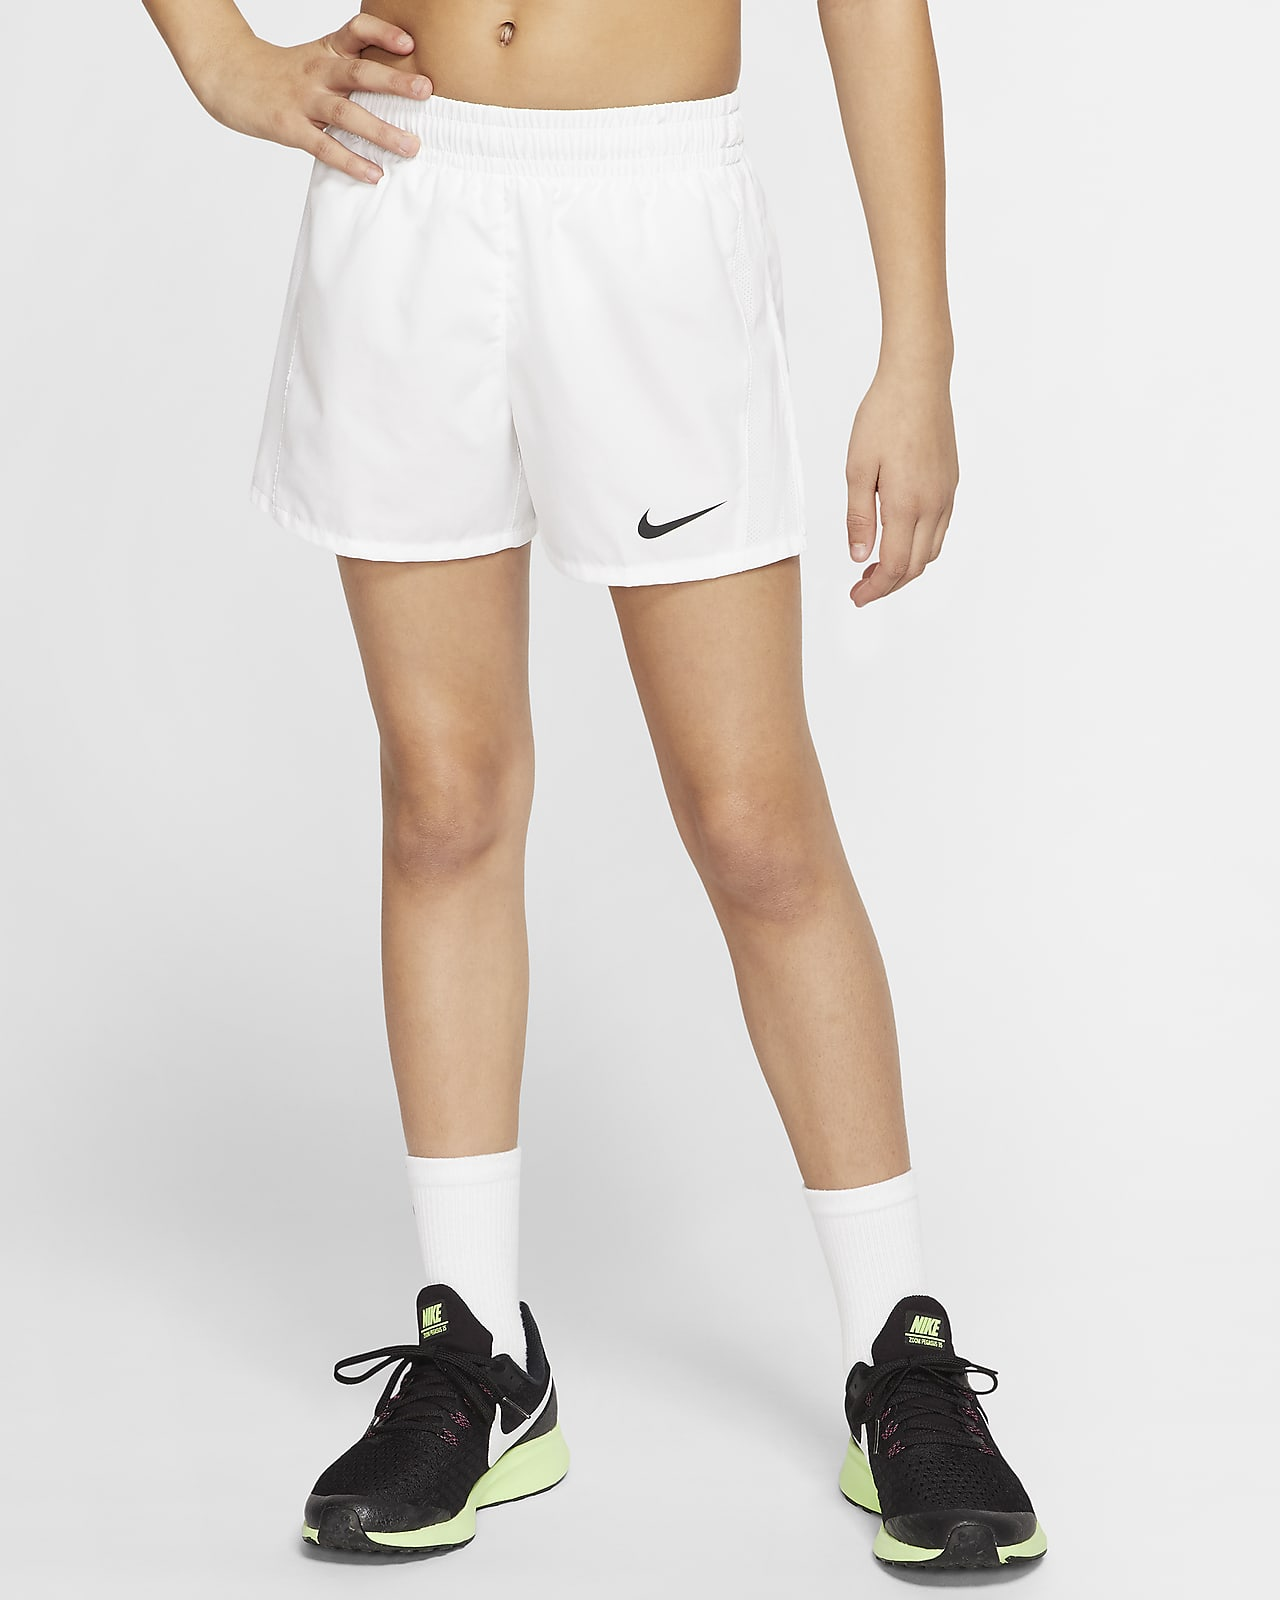 Nike Dri-FIT Big Kids' (Girls') Running Shorts